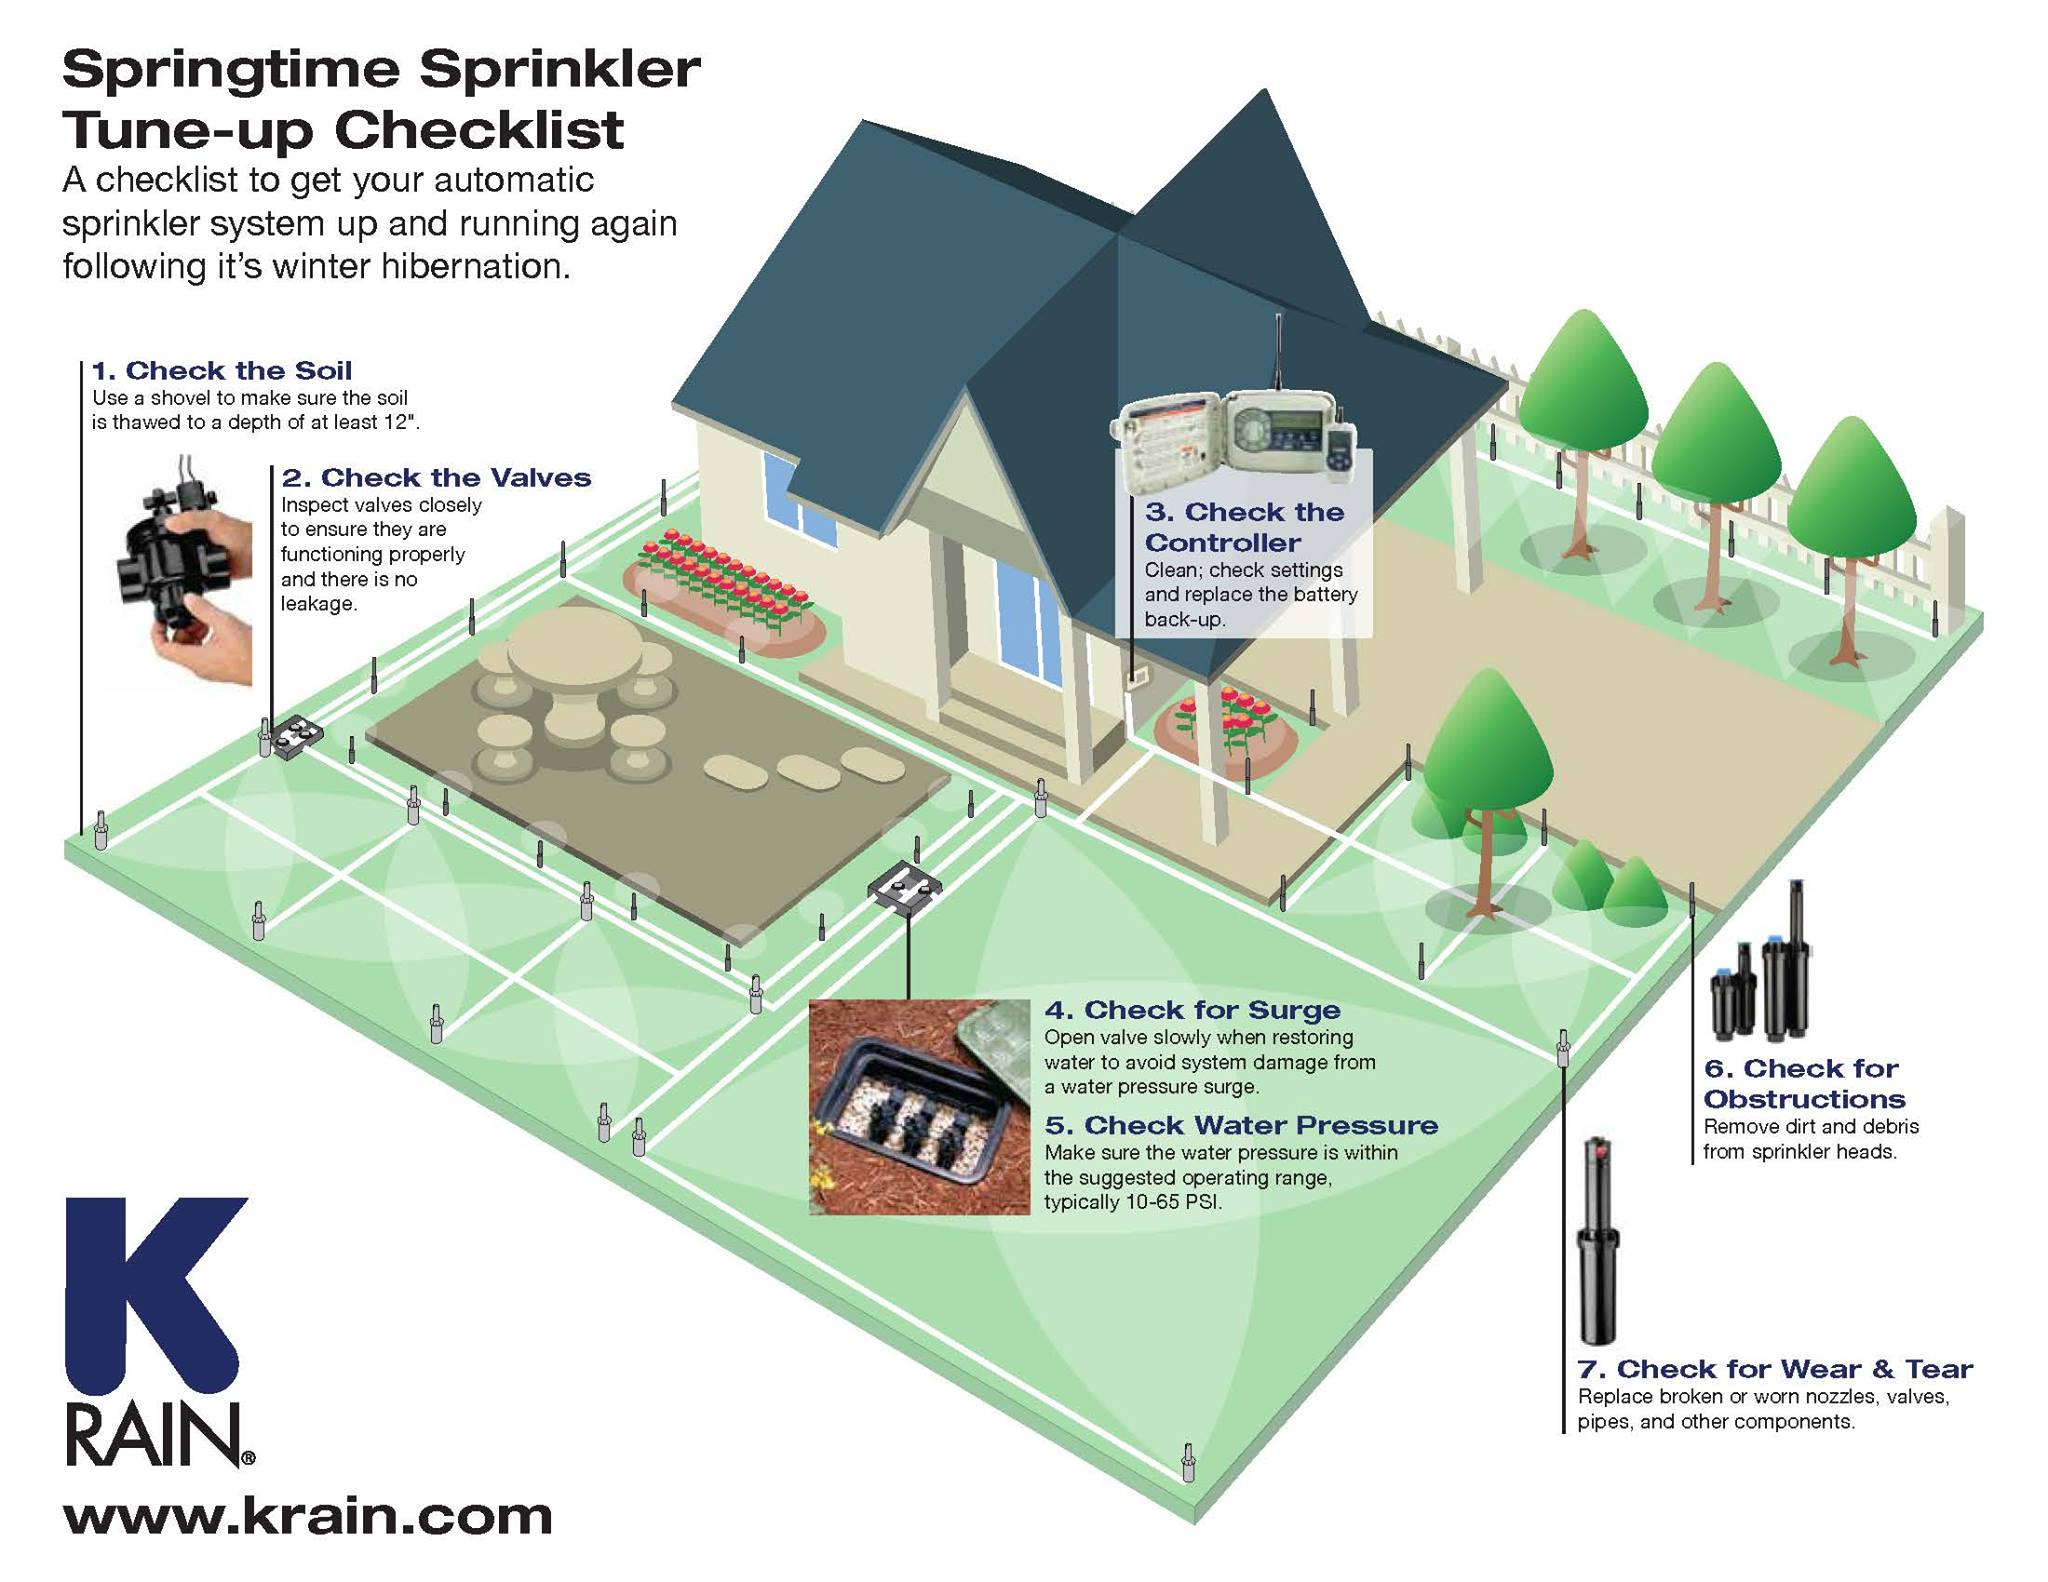 Springtime Sprinkler Tune-Up Checklist